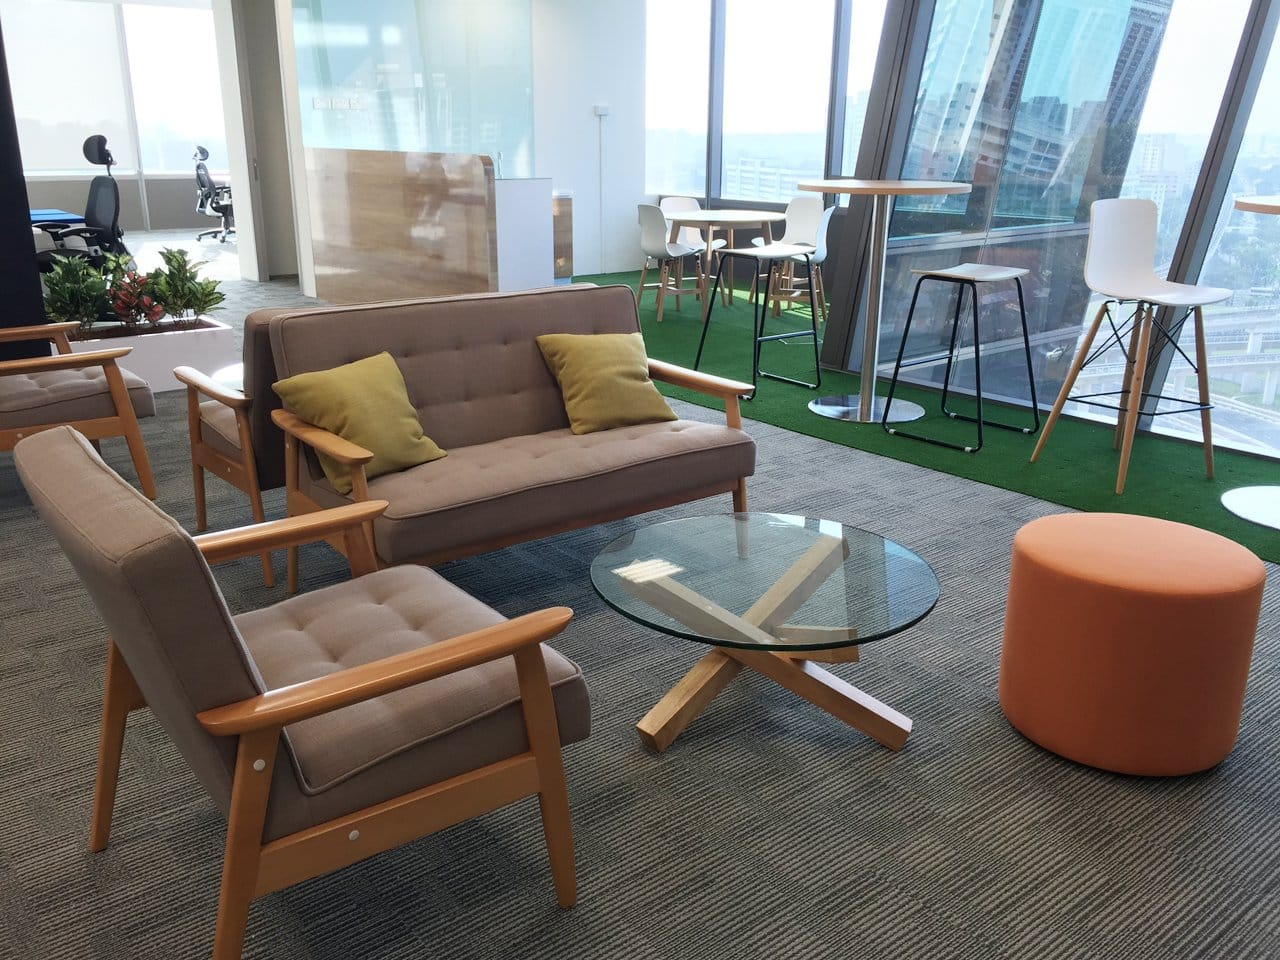 Dan Impact Pte Ltd - WestGate Building | Products Seen: [Oakland Round Dining Table – Natural, Diego Chair, Customised Traxtor Round Table Base, Turf Barstool, Plug Tower Barchair, Agatha Sofa, Pouf Round & Quiche Coffee Table]<br />